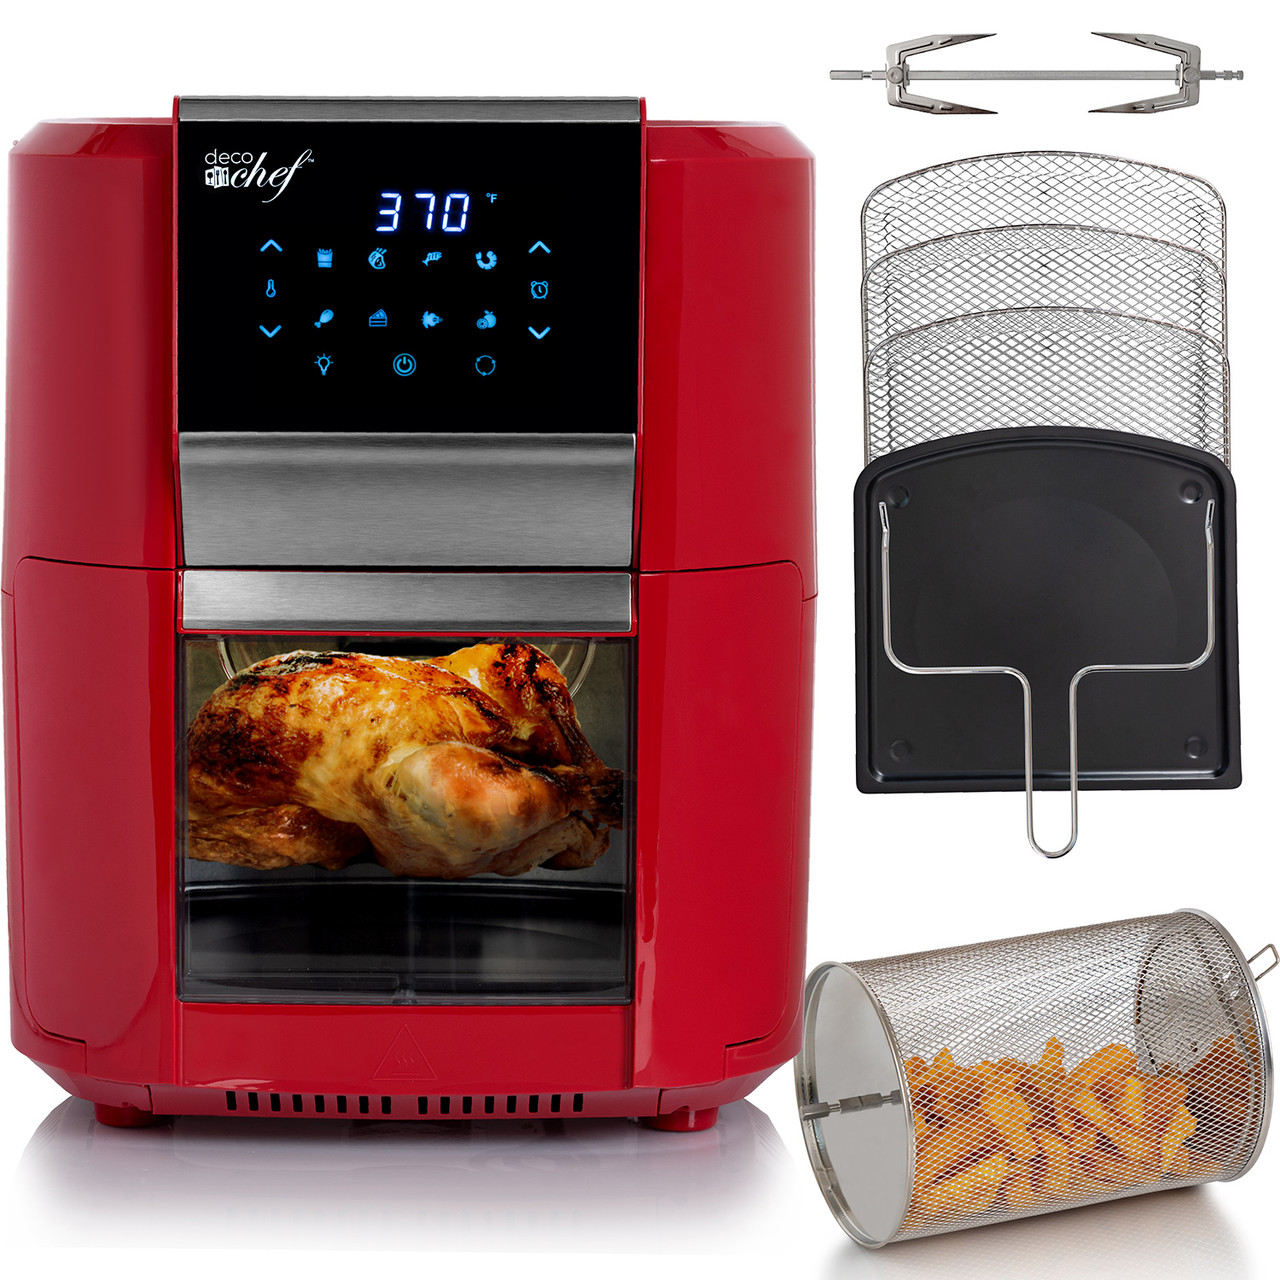 Deco Chef 12.7QT Digital Air Fryer Oven, with 3 Racks, Rotisserie, 8 Meal Presets, Red